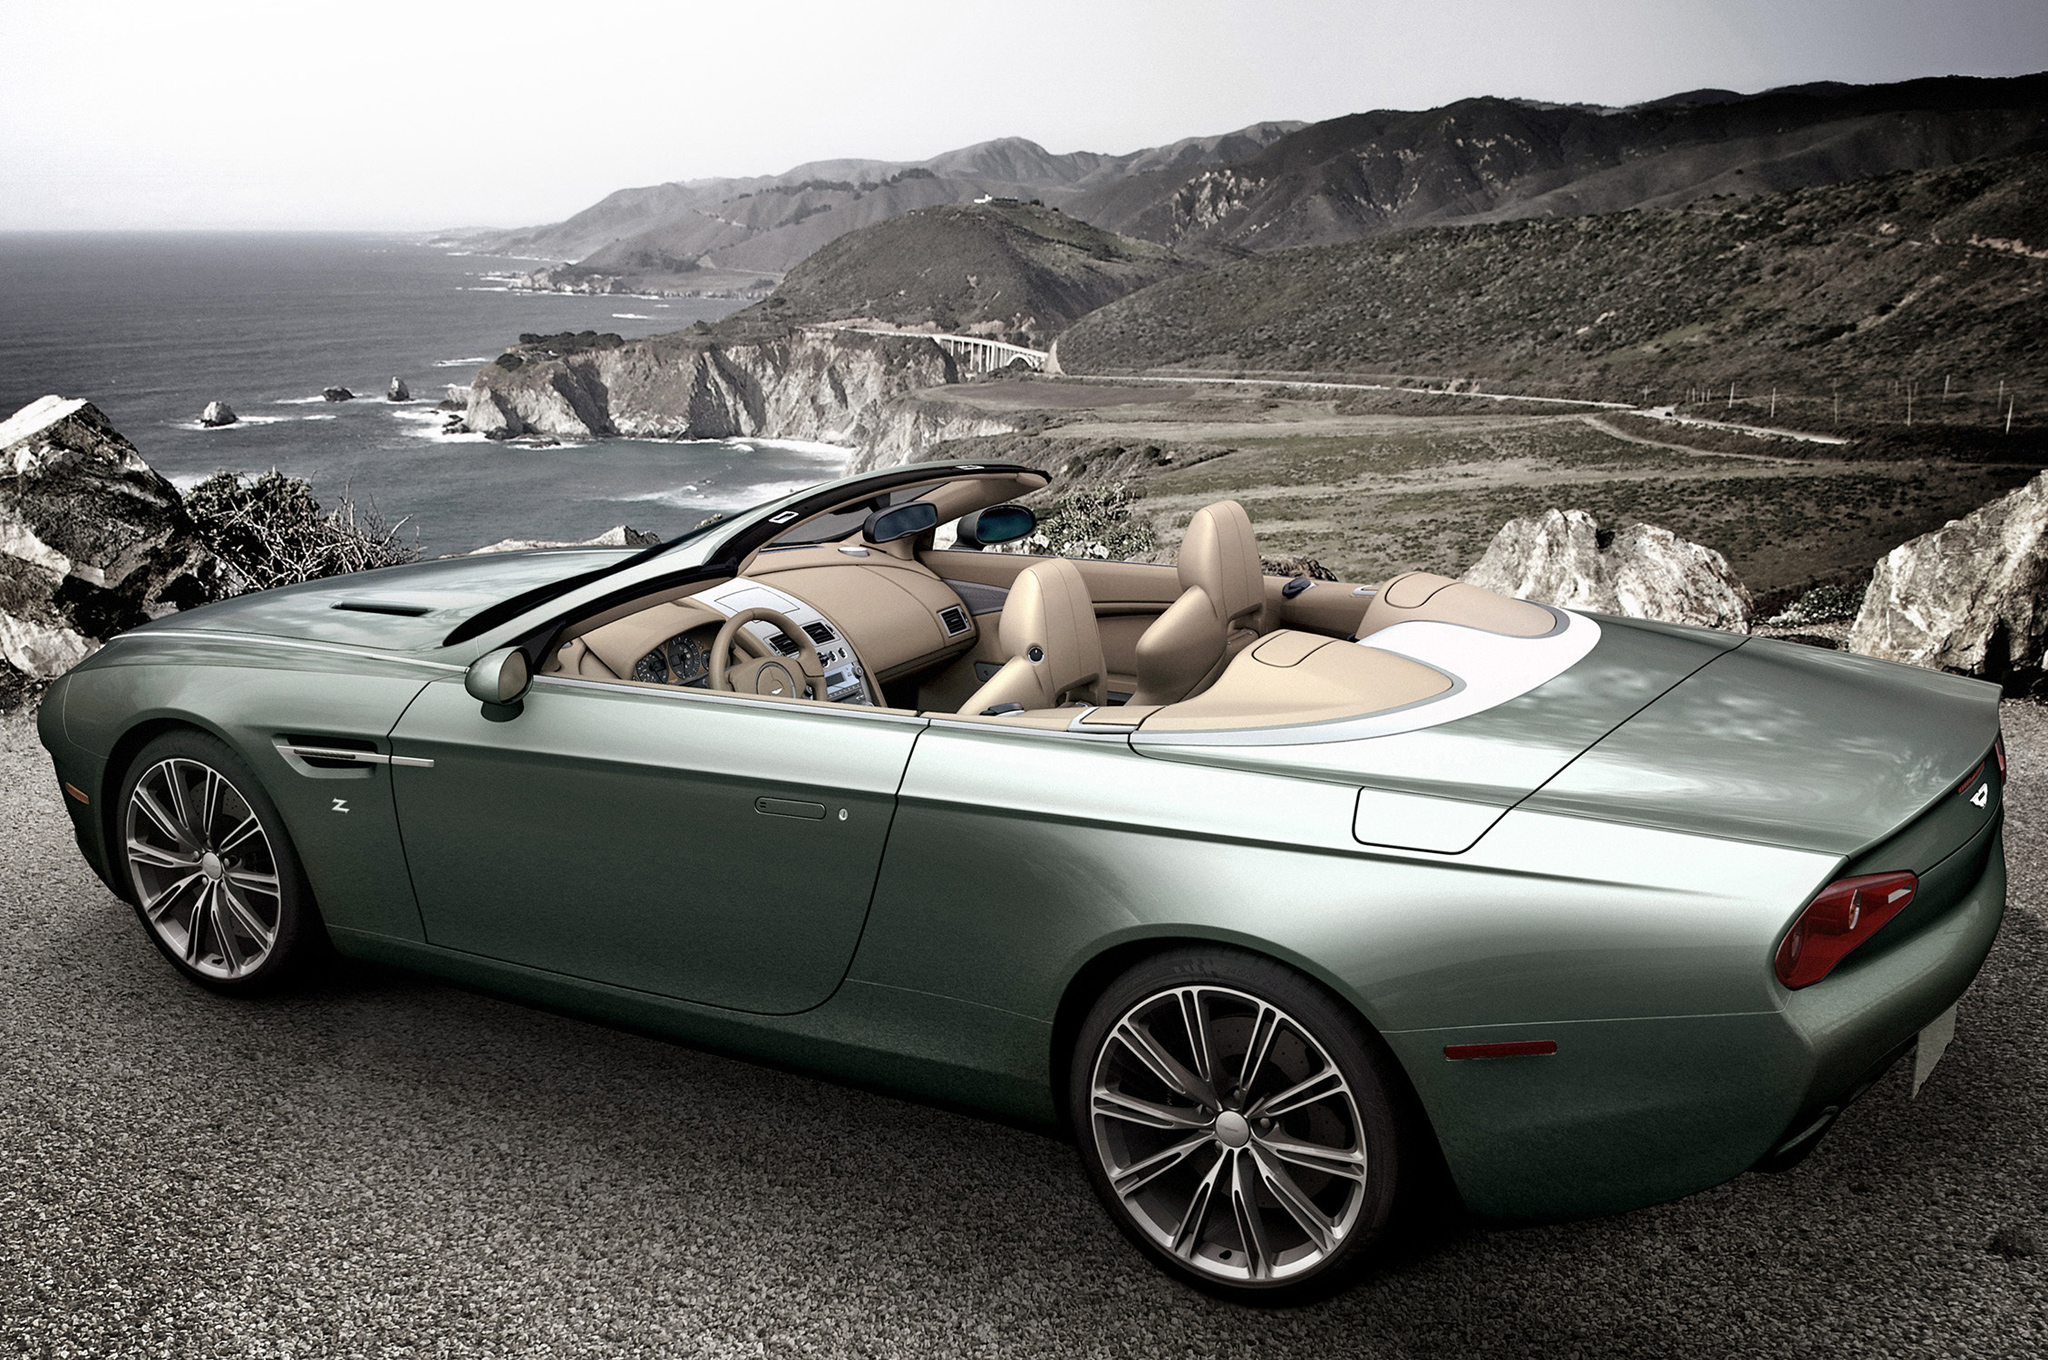 db9 – Automobile Wallpapers, in HD | Iphone | Android| Desktop 11 Wallpaper